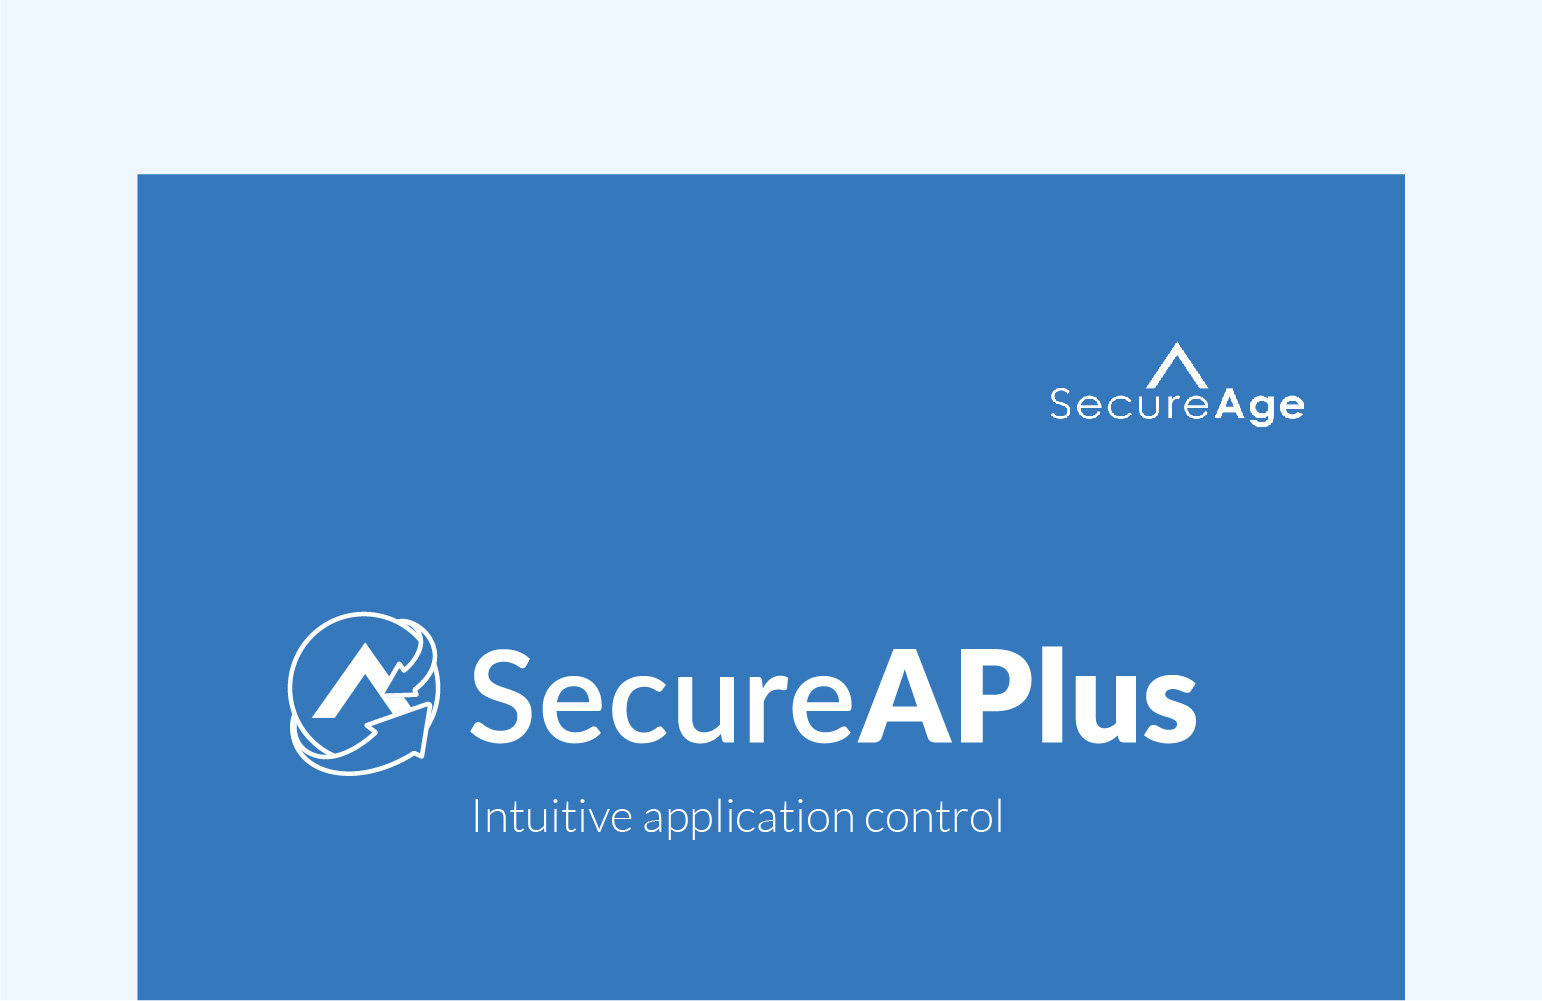 SecureAPlus Brochure